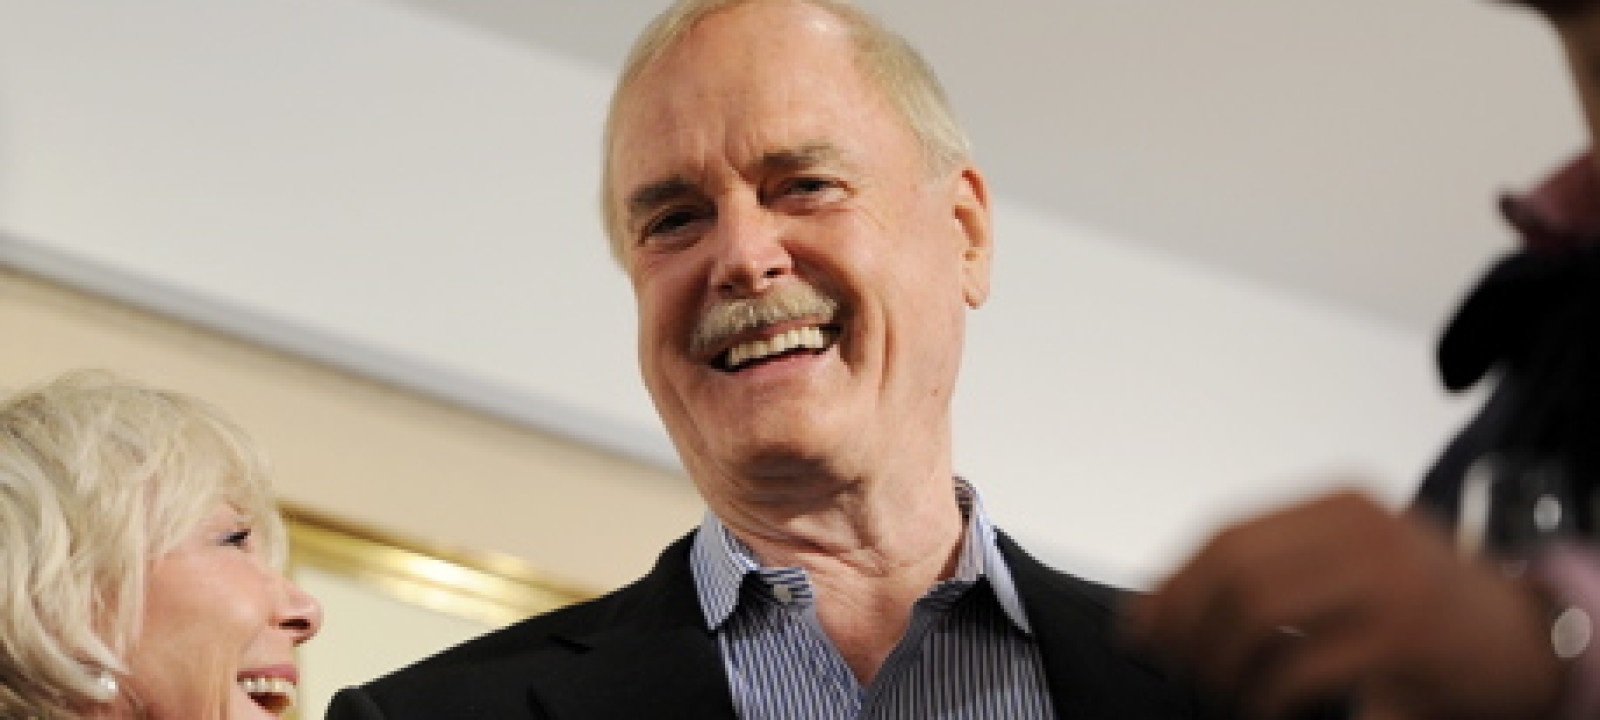 JohnCleese